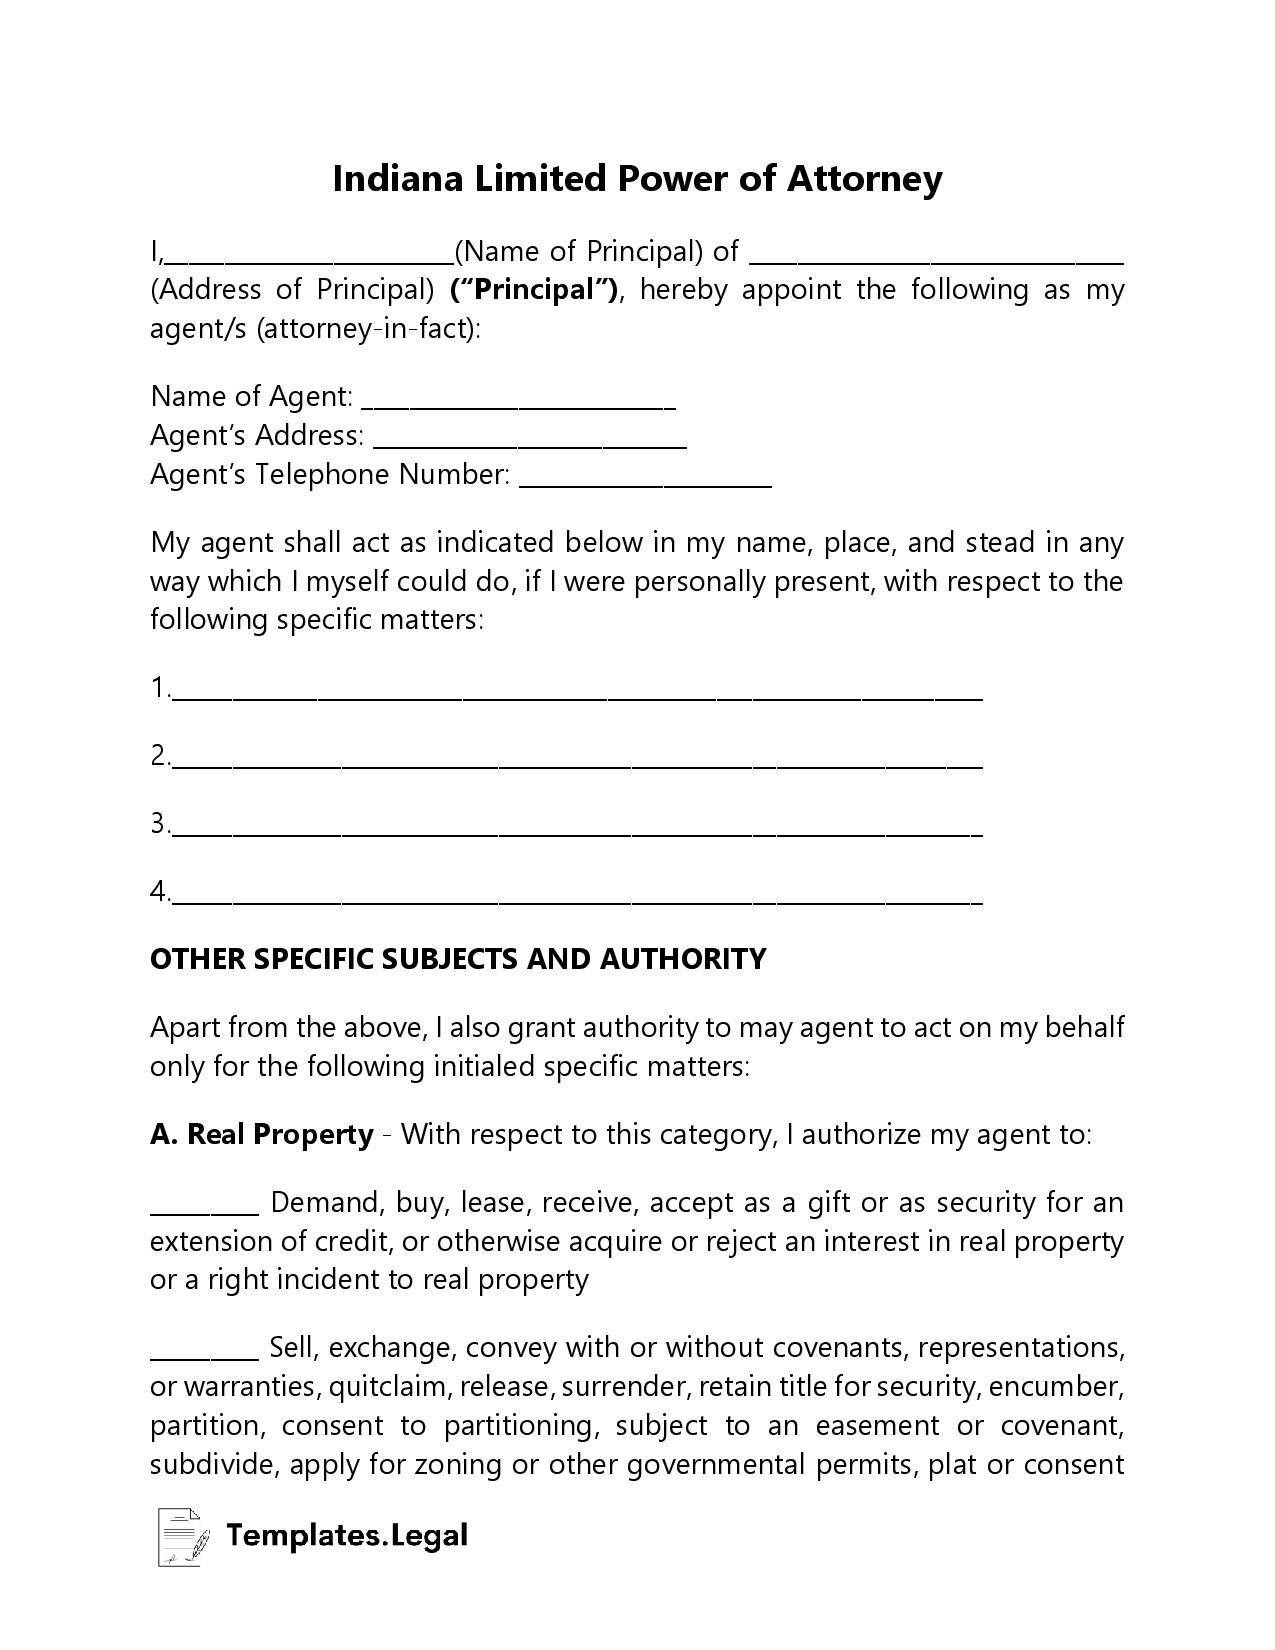 Indiana Limited Power of Attorney - Templates.Legal